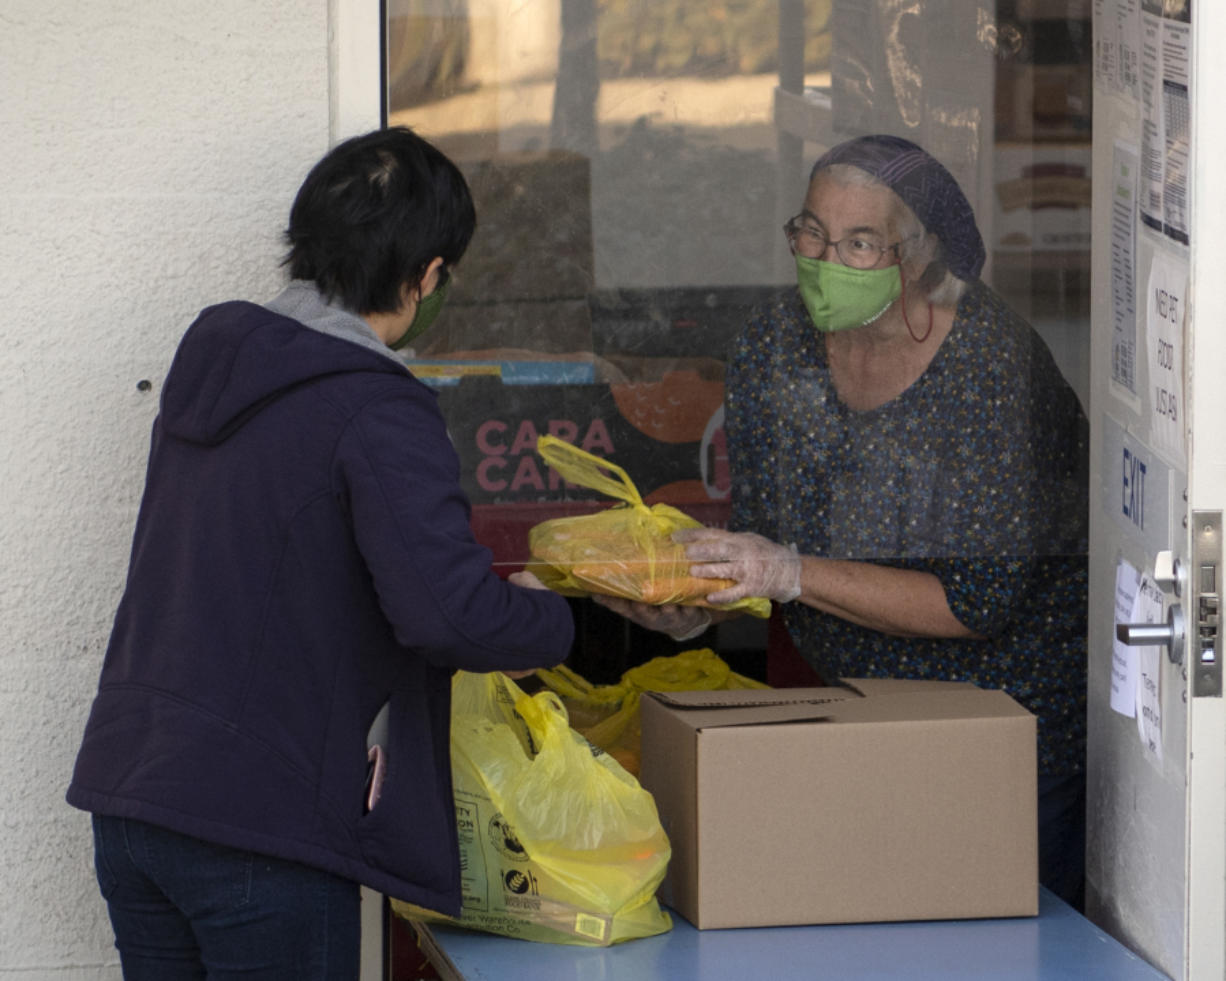 Volunteer Libby Bryant helps a food recipient at FISH Westside Food Pantry of Vancouver. The pantry serves about 1,200 families, or 3,500 people every month, Executive Director James Fitzgerald said.